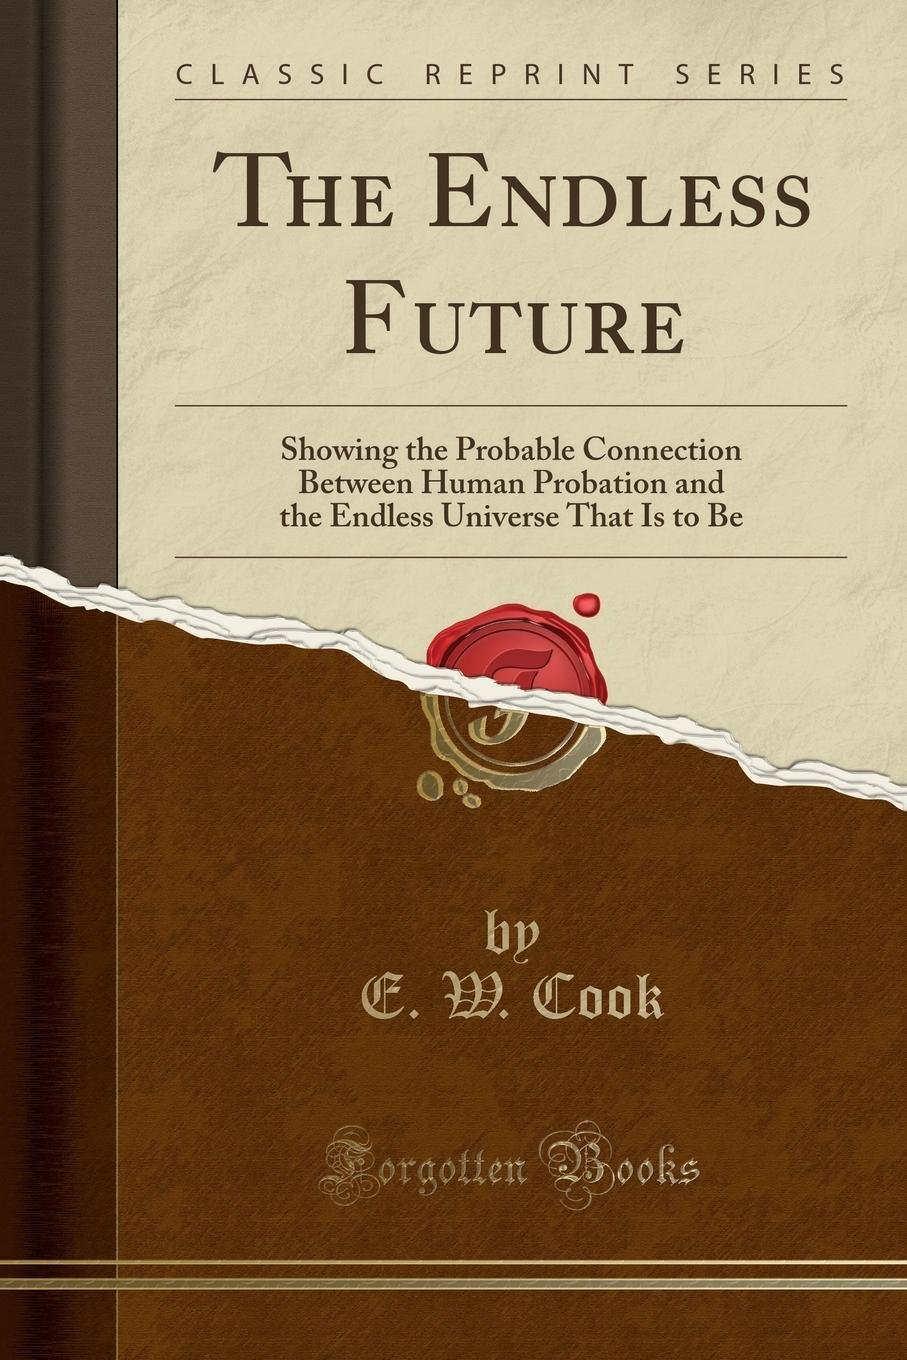 The Endless Future: Showing the Probable Connection Between Human Probation and the Endless Universe That Is to Be (Classic Reprint) pdf epub